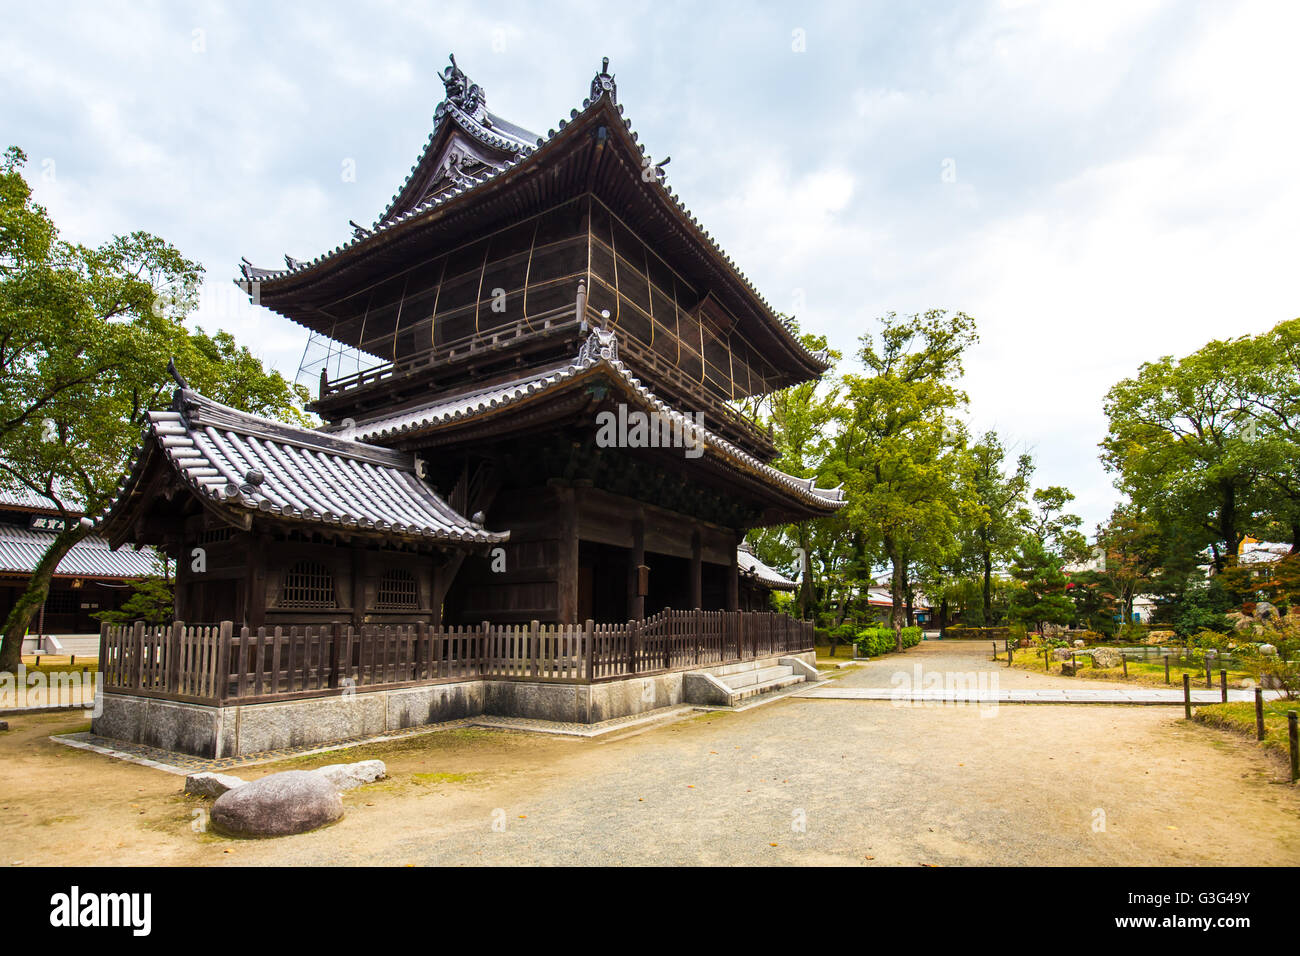 Hakata, Japan - November 28, 2014: Shofukuji has the distinction of being the first Zen temple constructed in Japan. - Stock Image